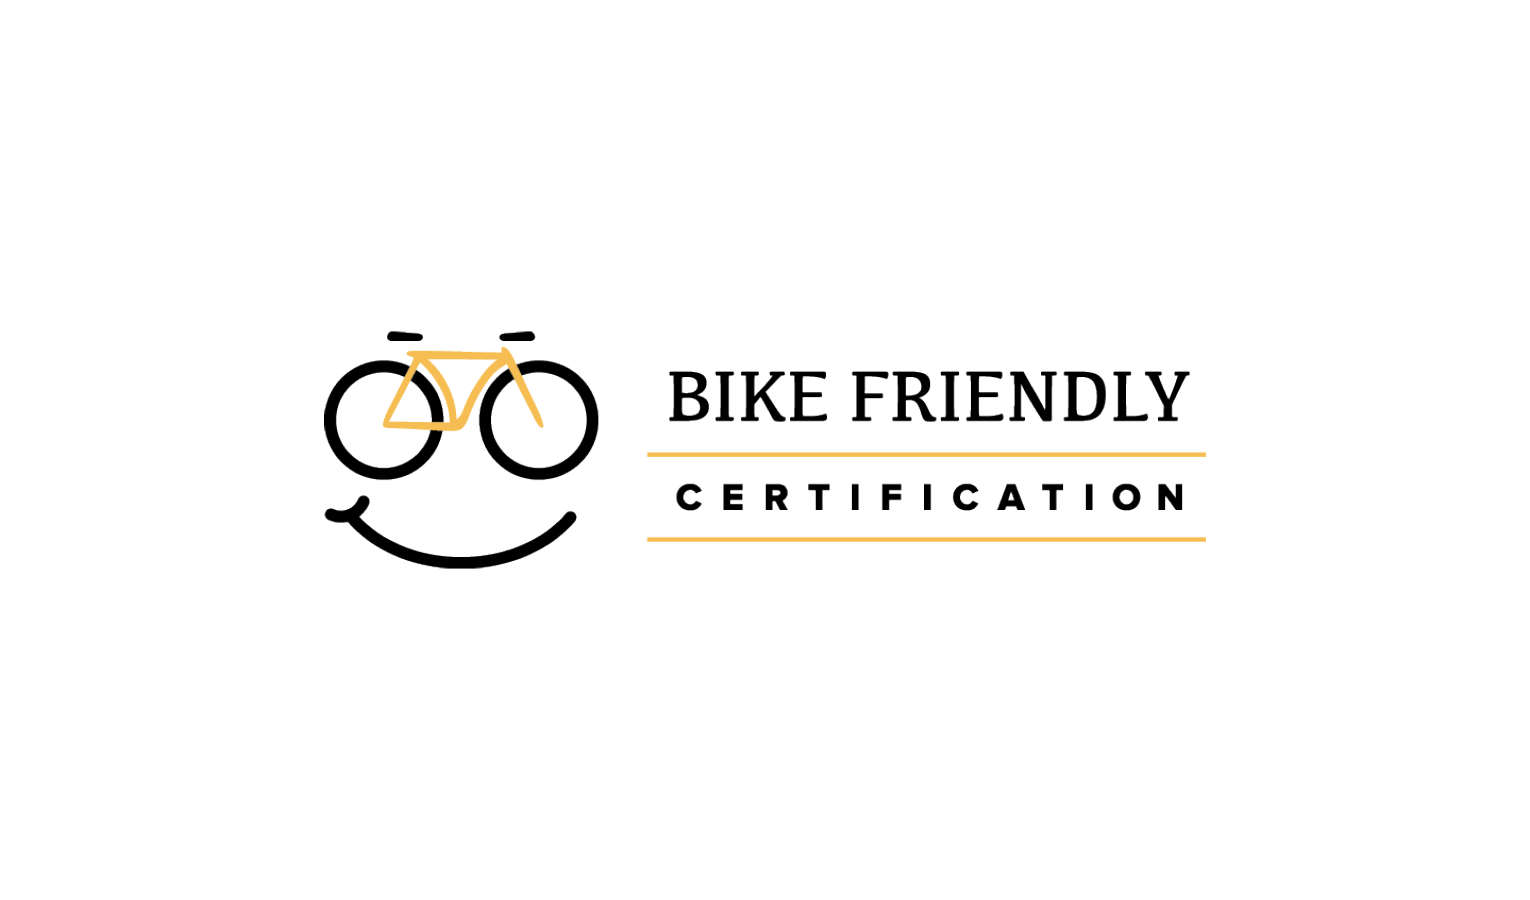 Bike Friendly Certification Rarebird